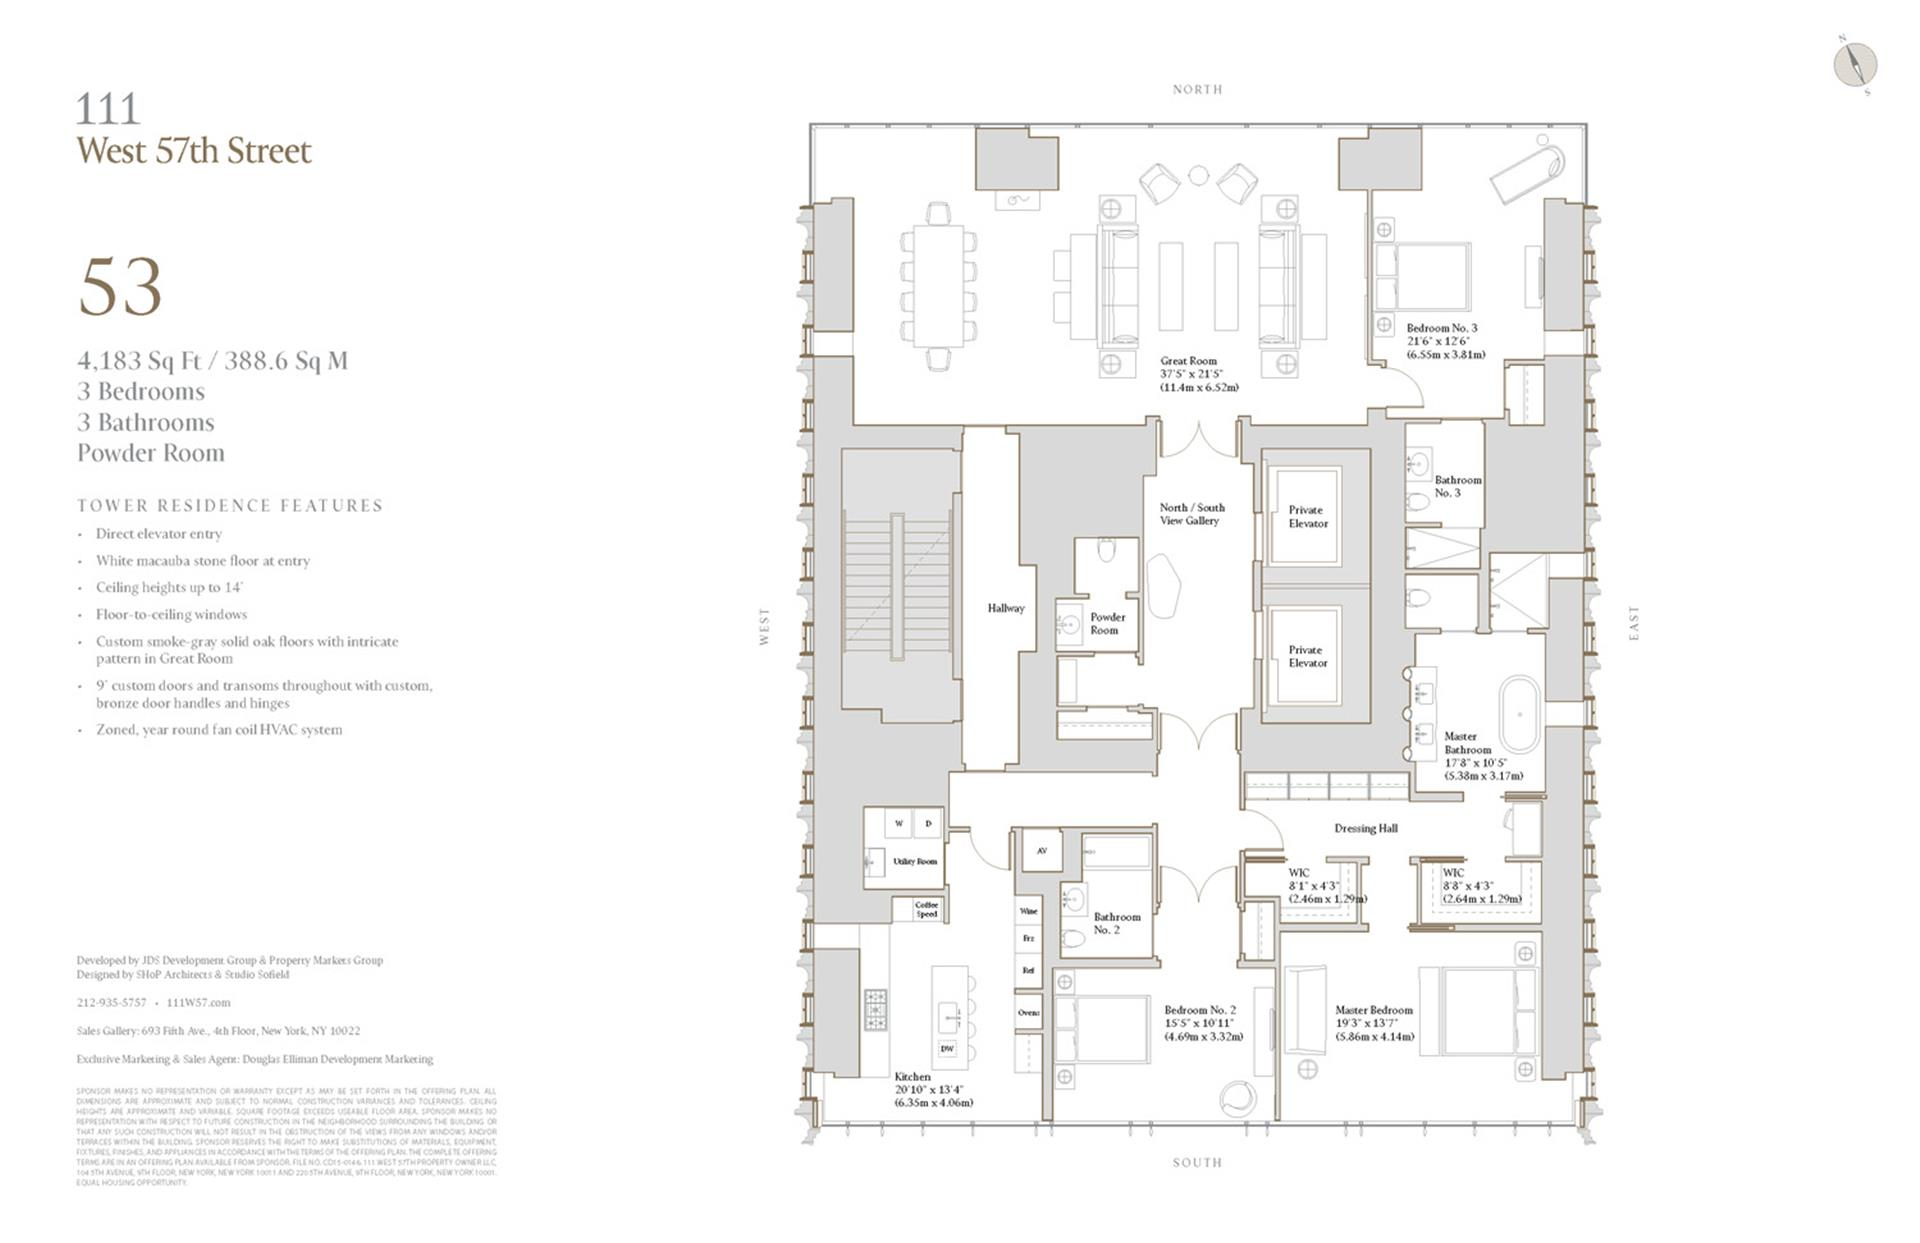 Floor plan of 111 West 57th Street, 53 - Central Park South, New York